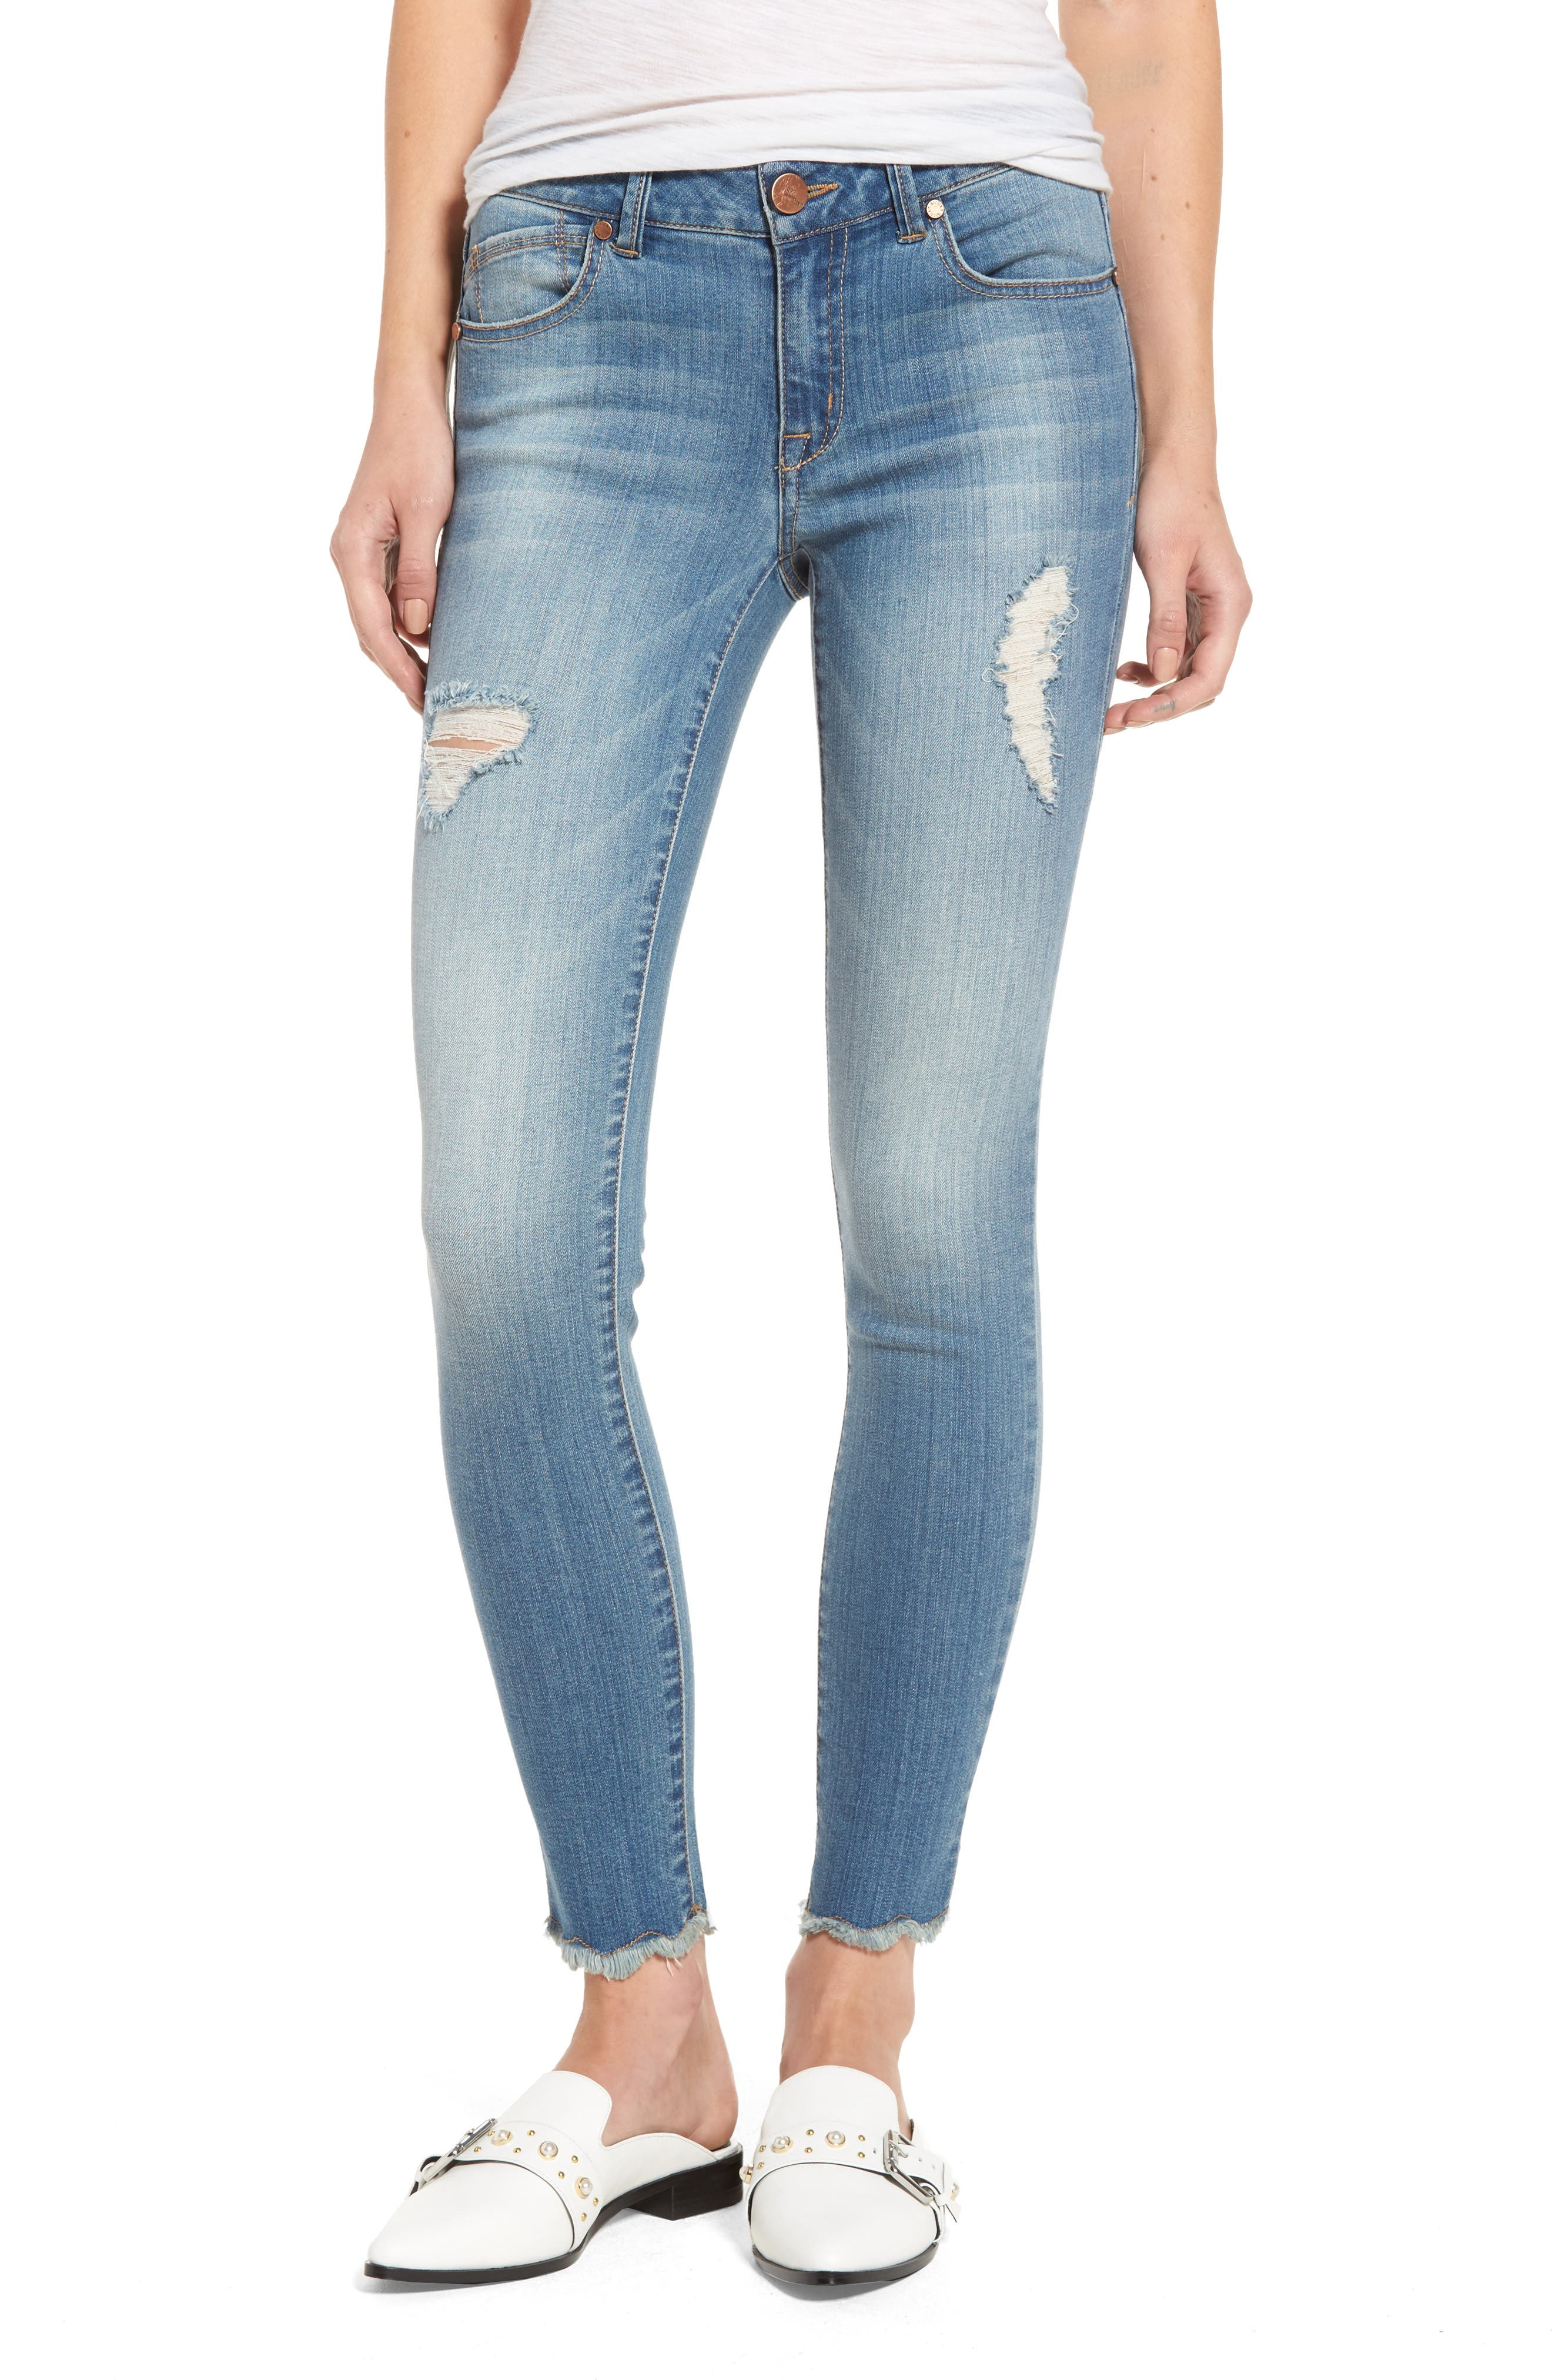 1822 Denim Raw Edge Skinny Jeans (Wesley)